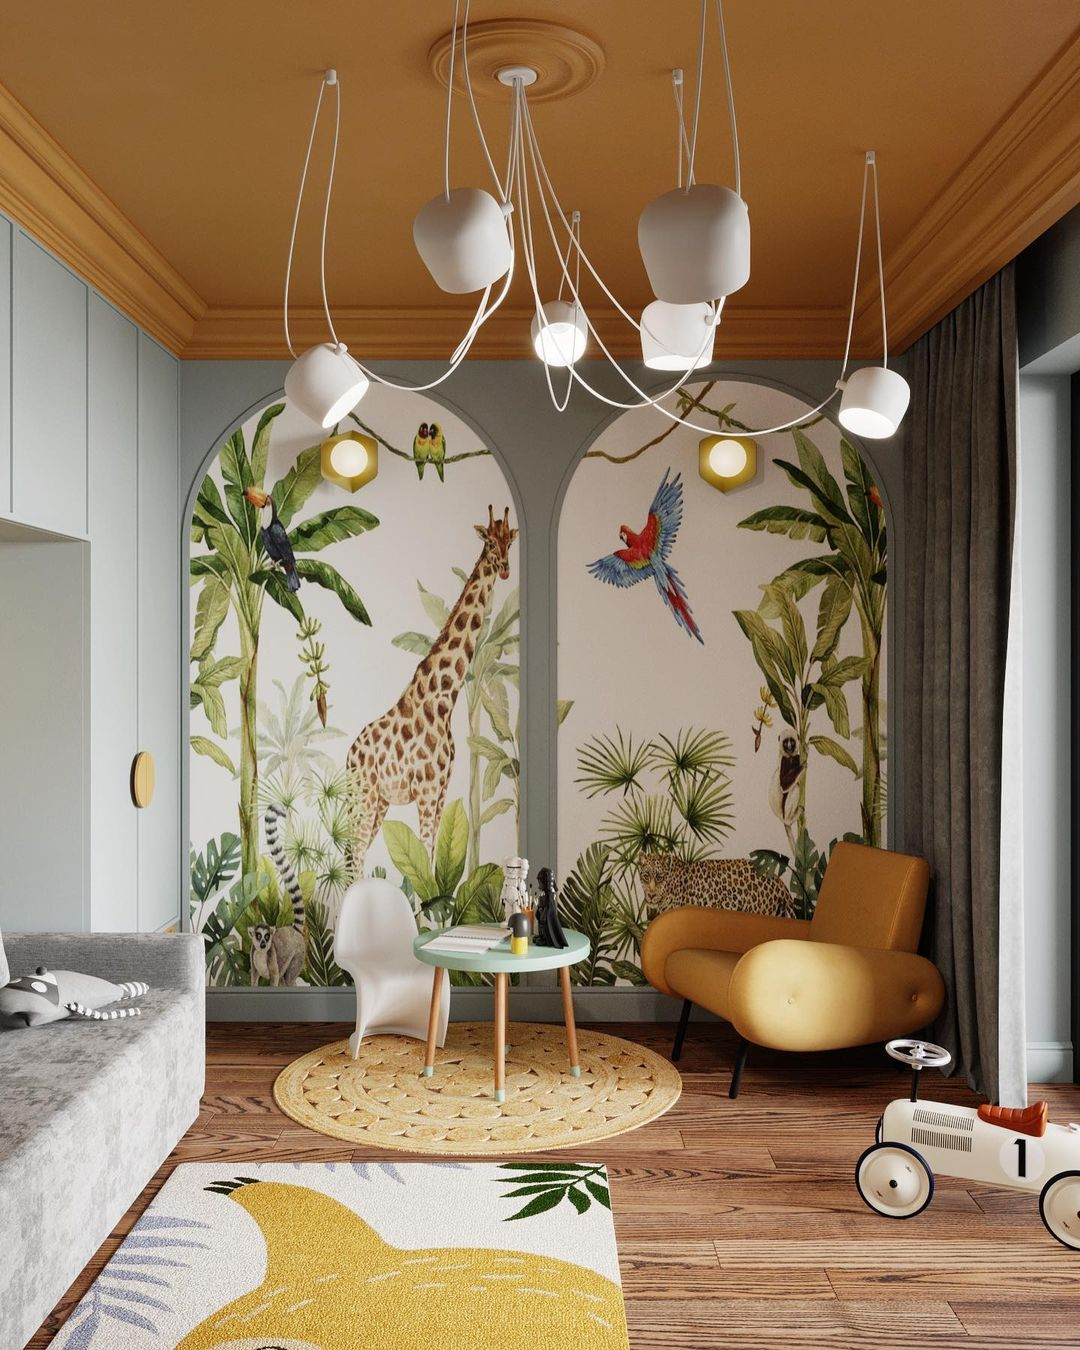 Tropical kids play room design by SHUBOCHKINI architects